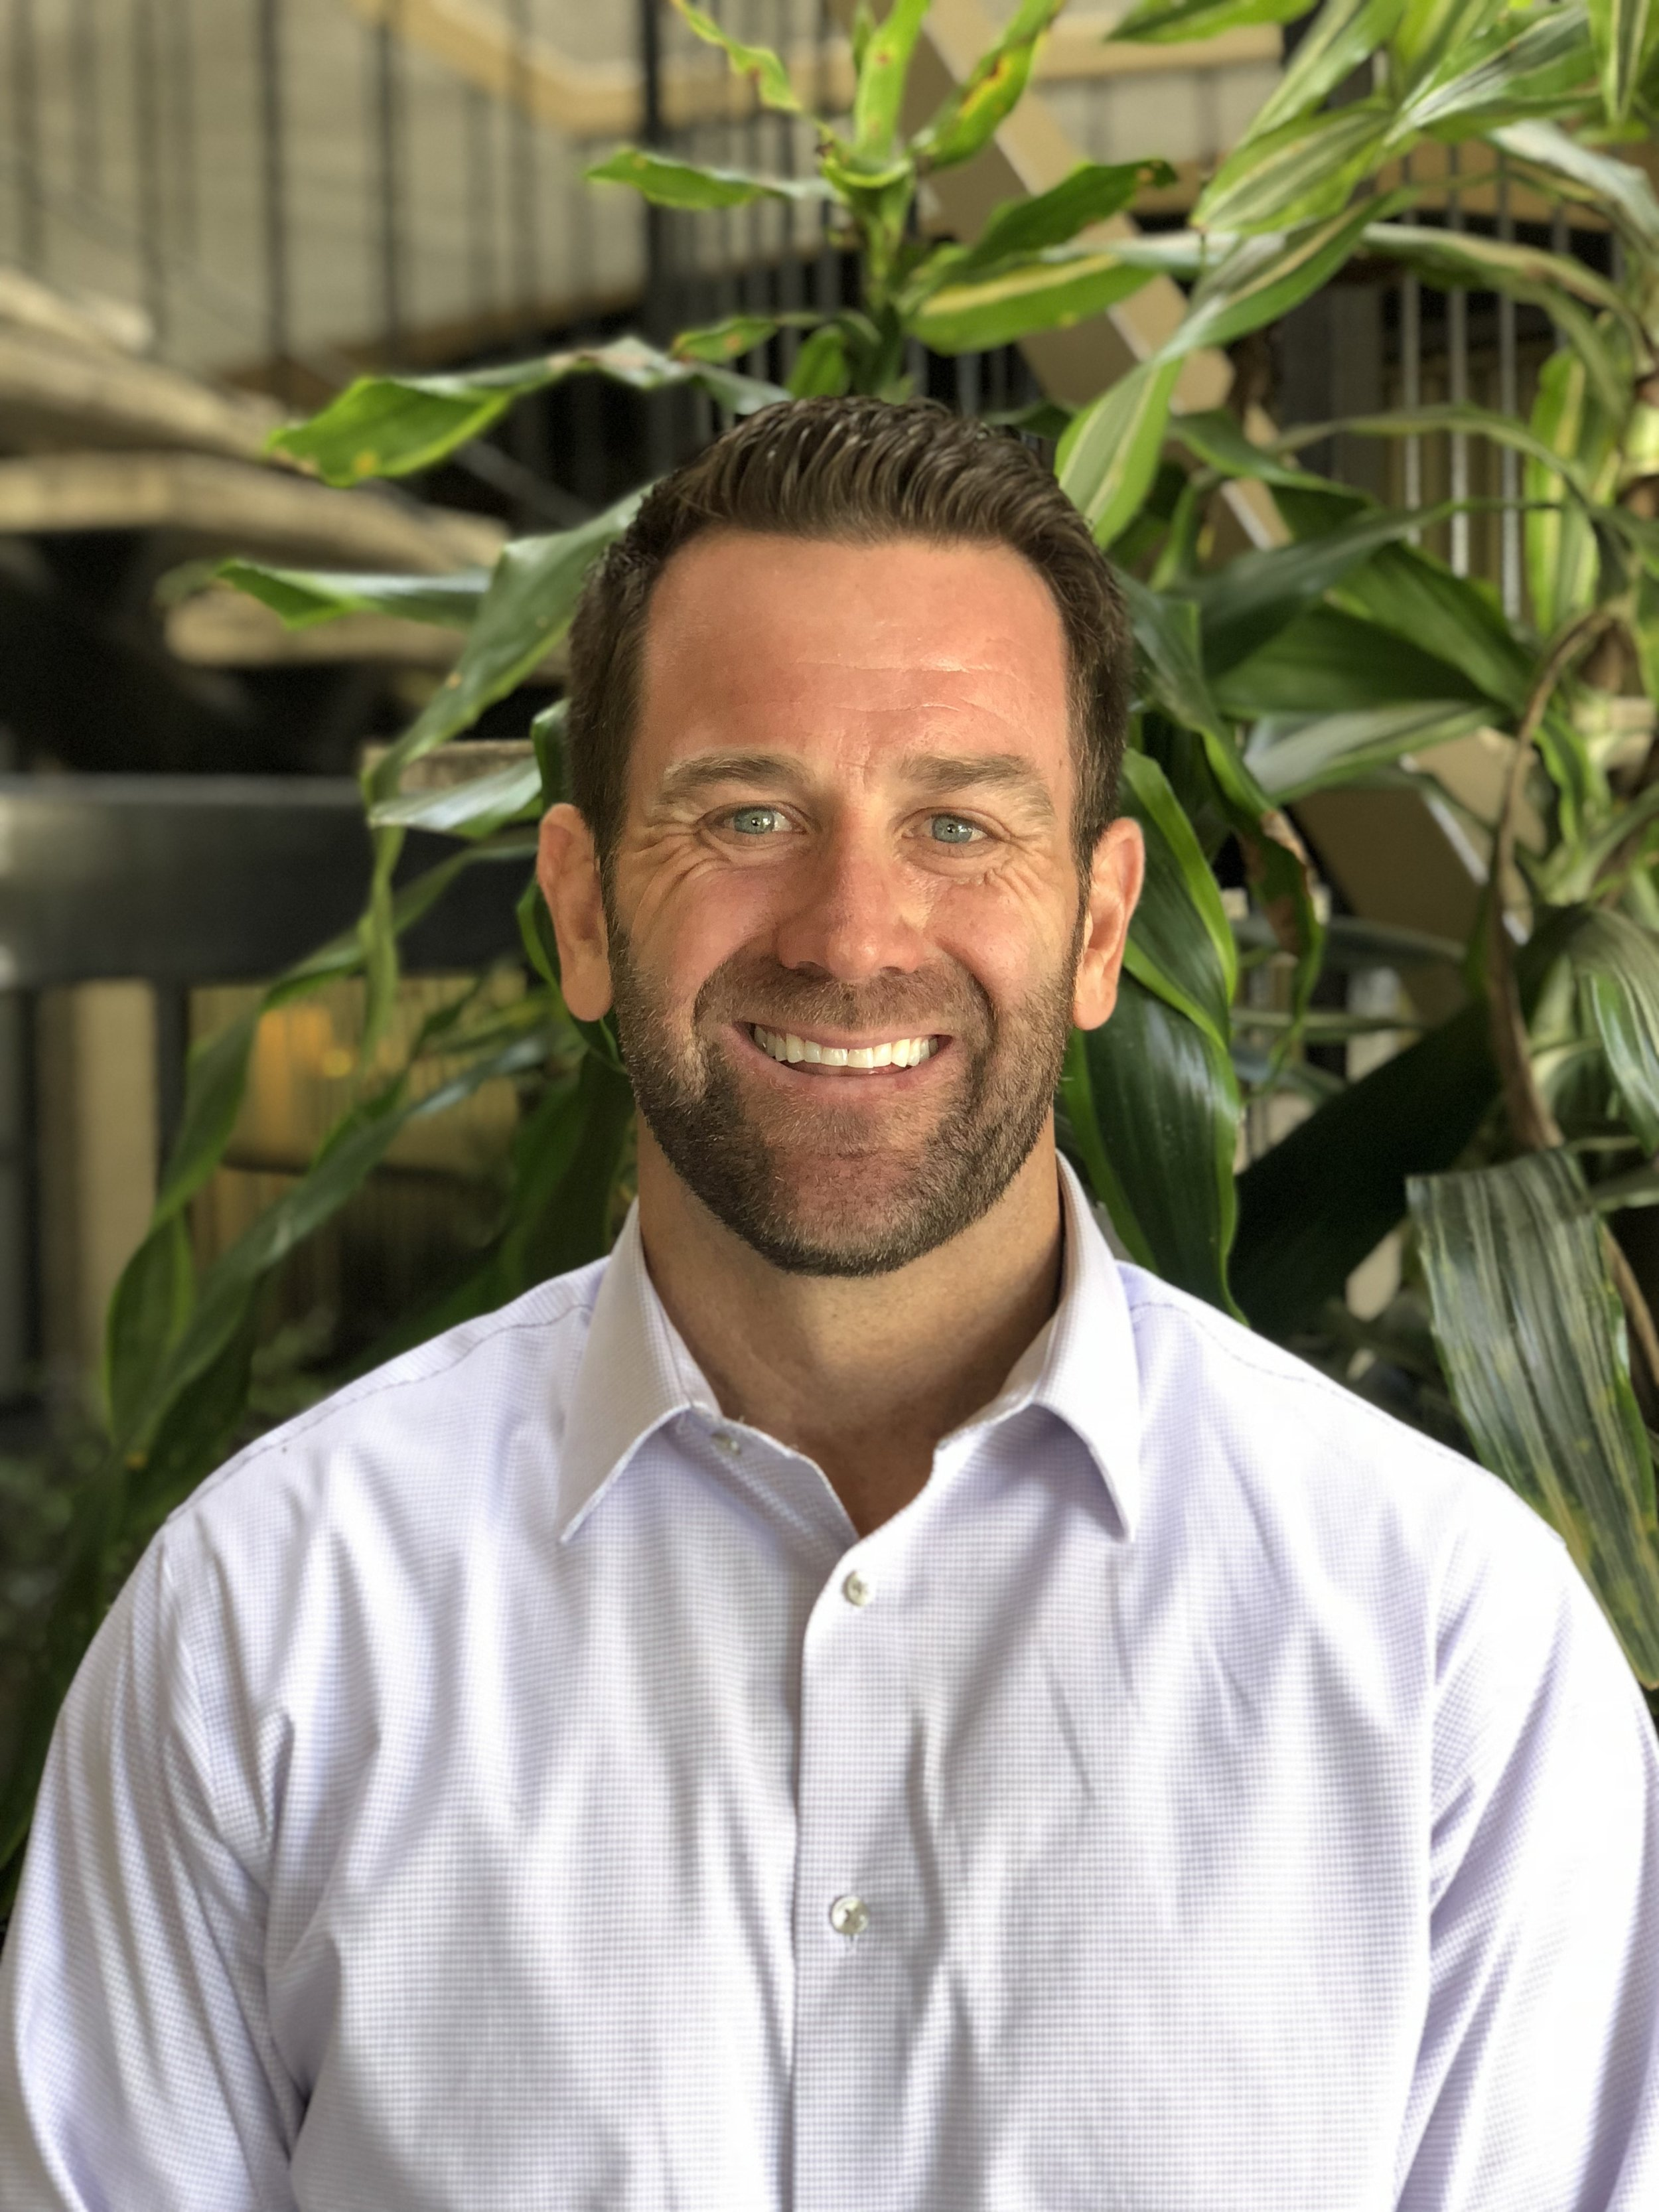 Aaron Hoke - Aaron Hoke joined AIM in 1998, and became involved in management just two years later. In the years 2001 and 2002, Aaron had won AIM?s prestigious TOP Organization award. Aaron qualified for the AIM Executive Committee in 2001, and continues to work out of the Anaheim office.